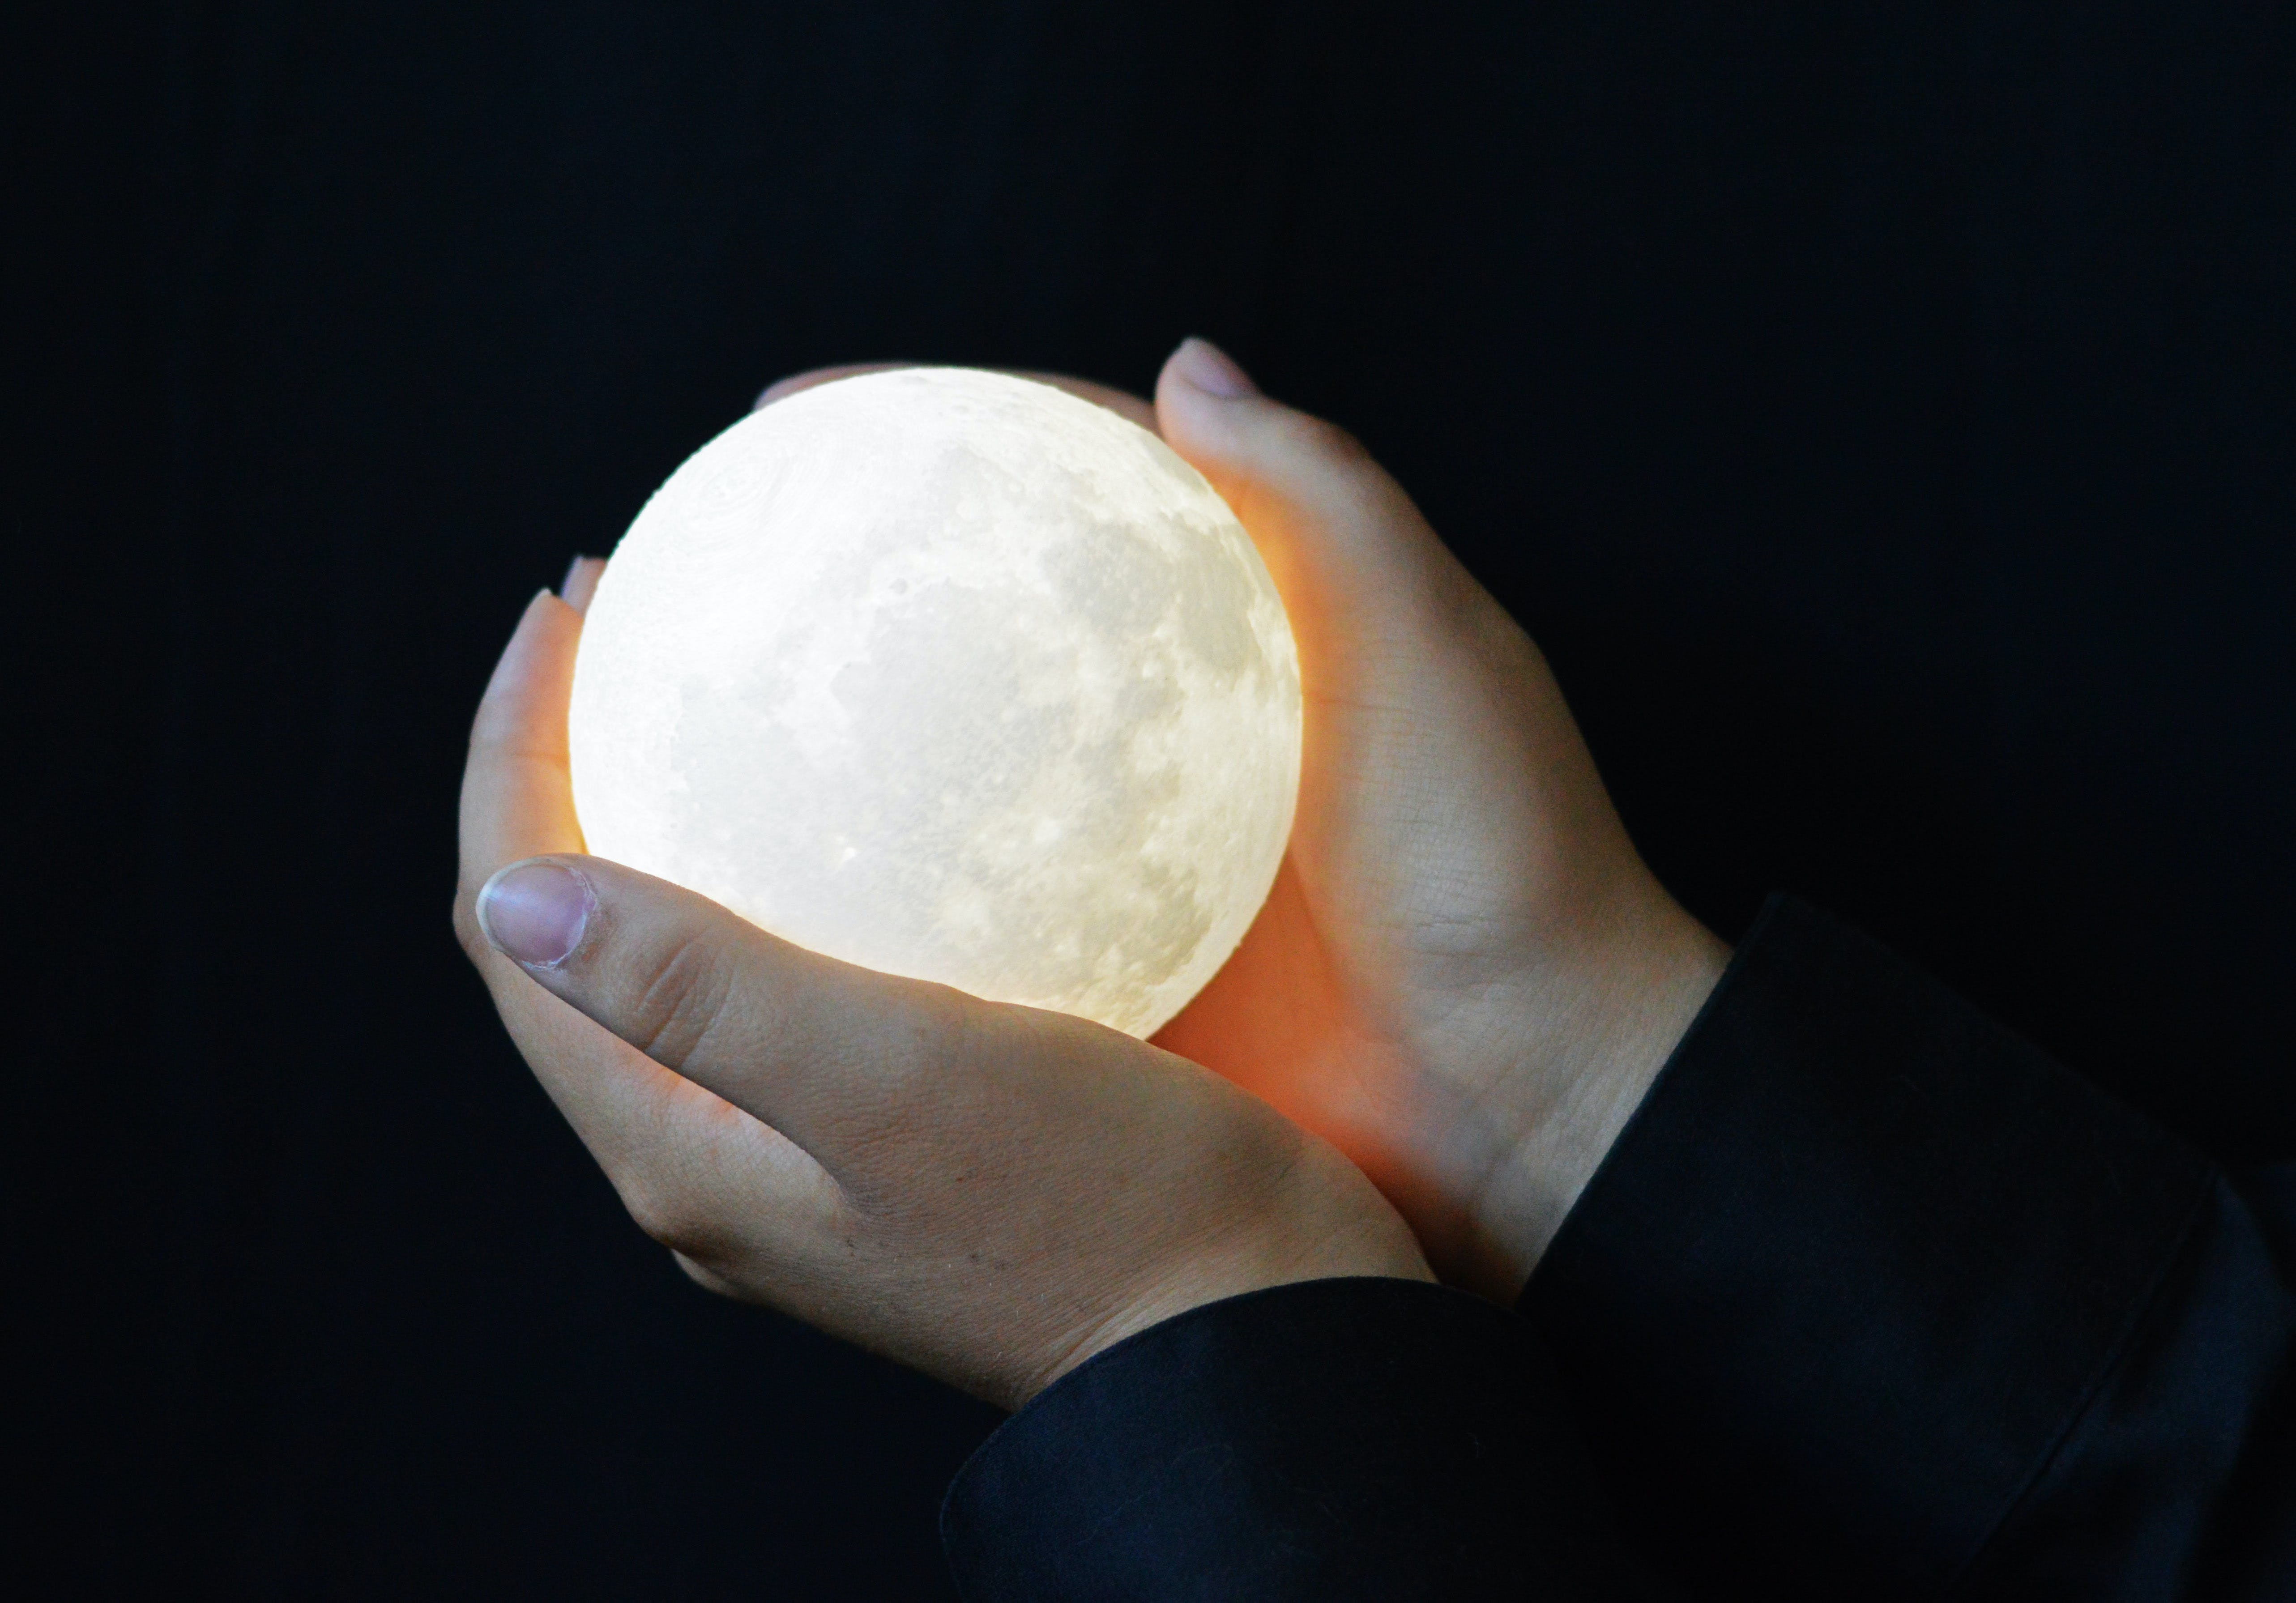 Free stock photo of full moon, hands, hands holding full moon